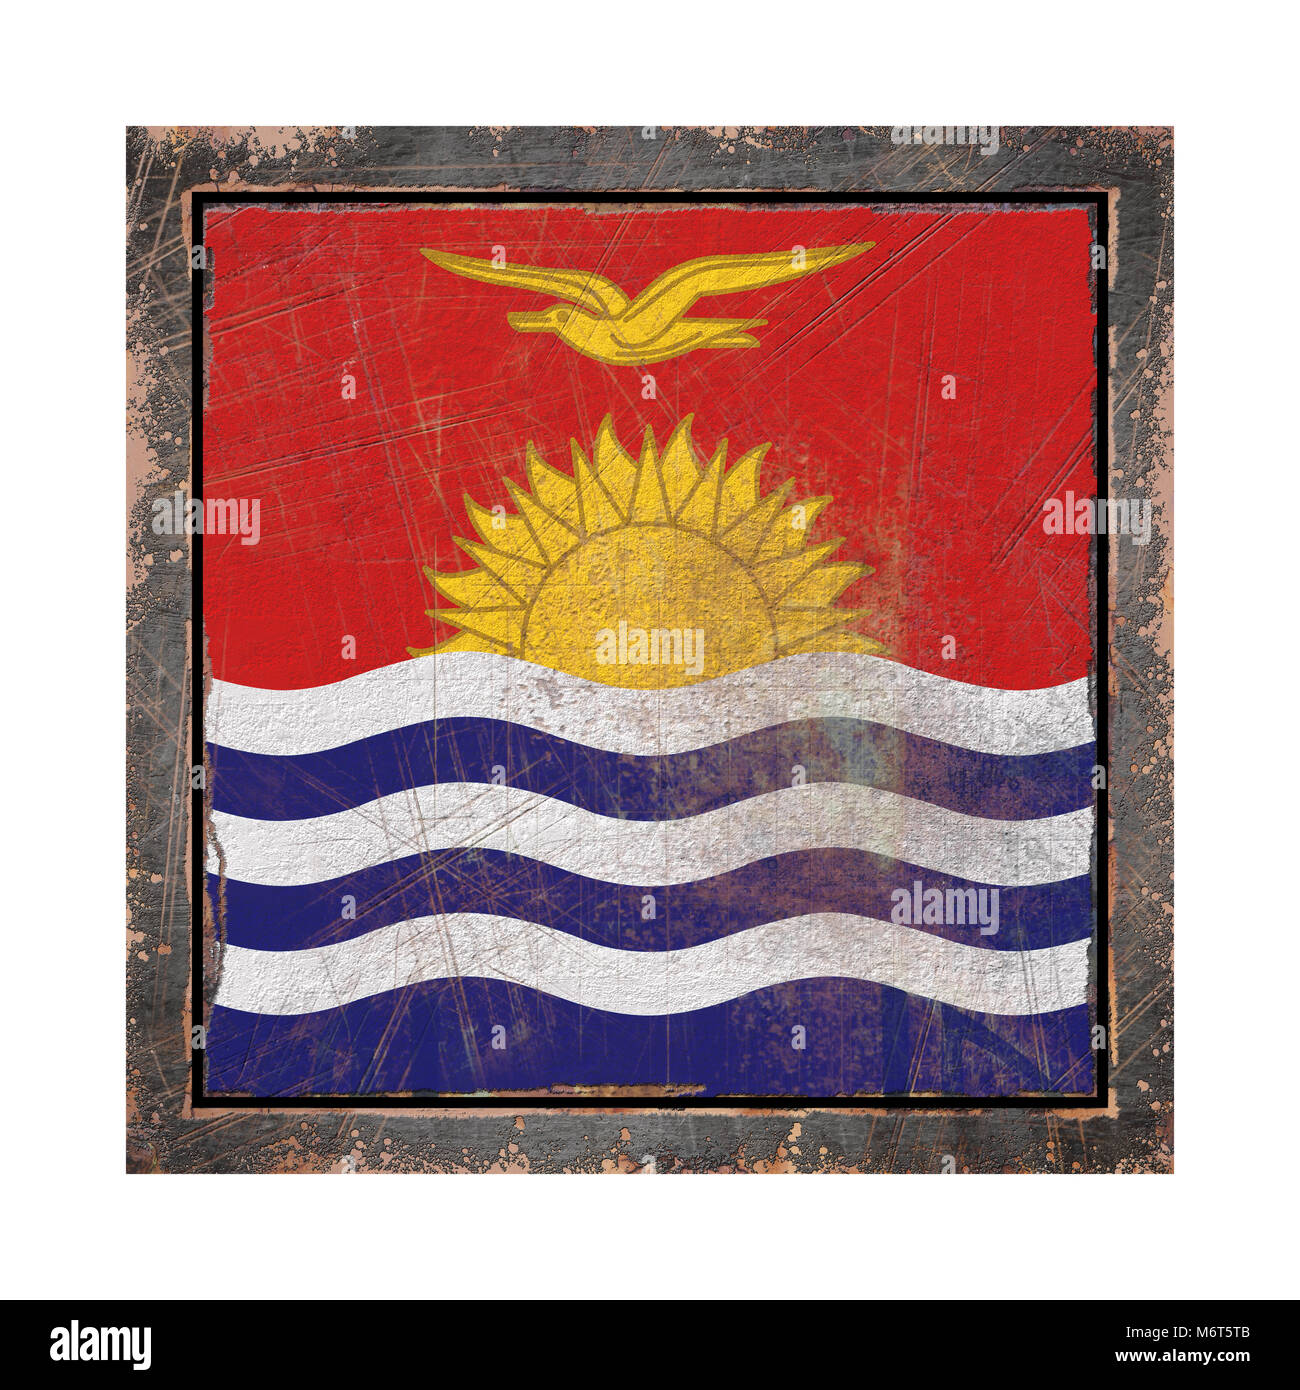 3d rendering of a Kiribati flag over a rusty metallic plate in an old frame. Isolated on white background. - Stock Image